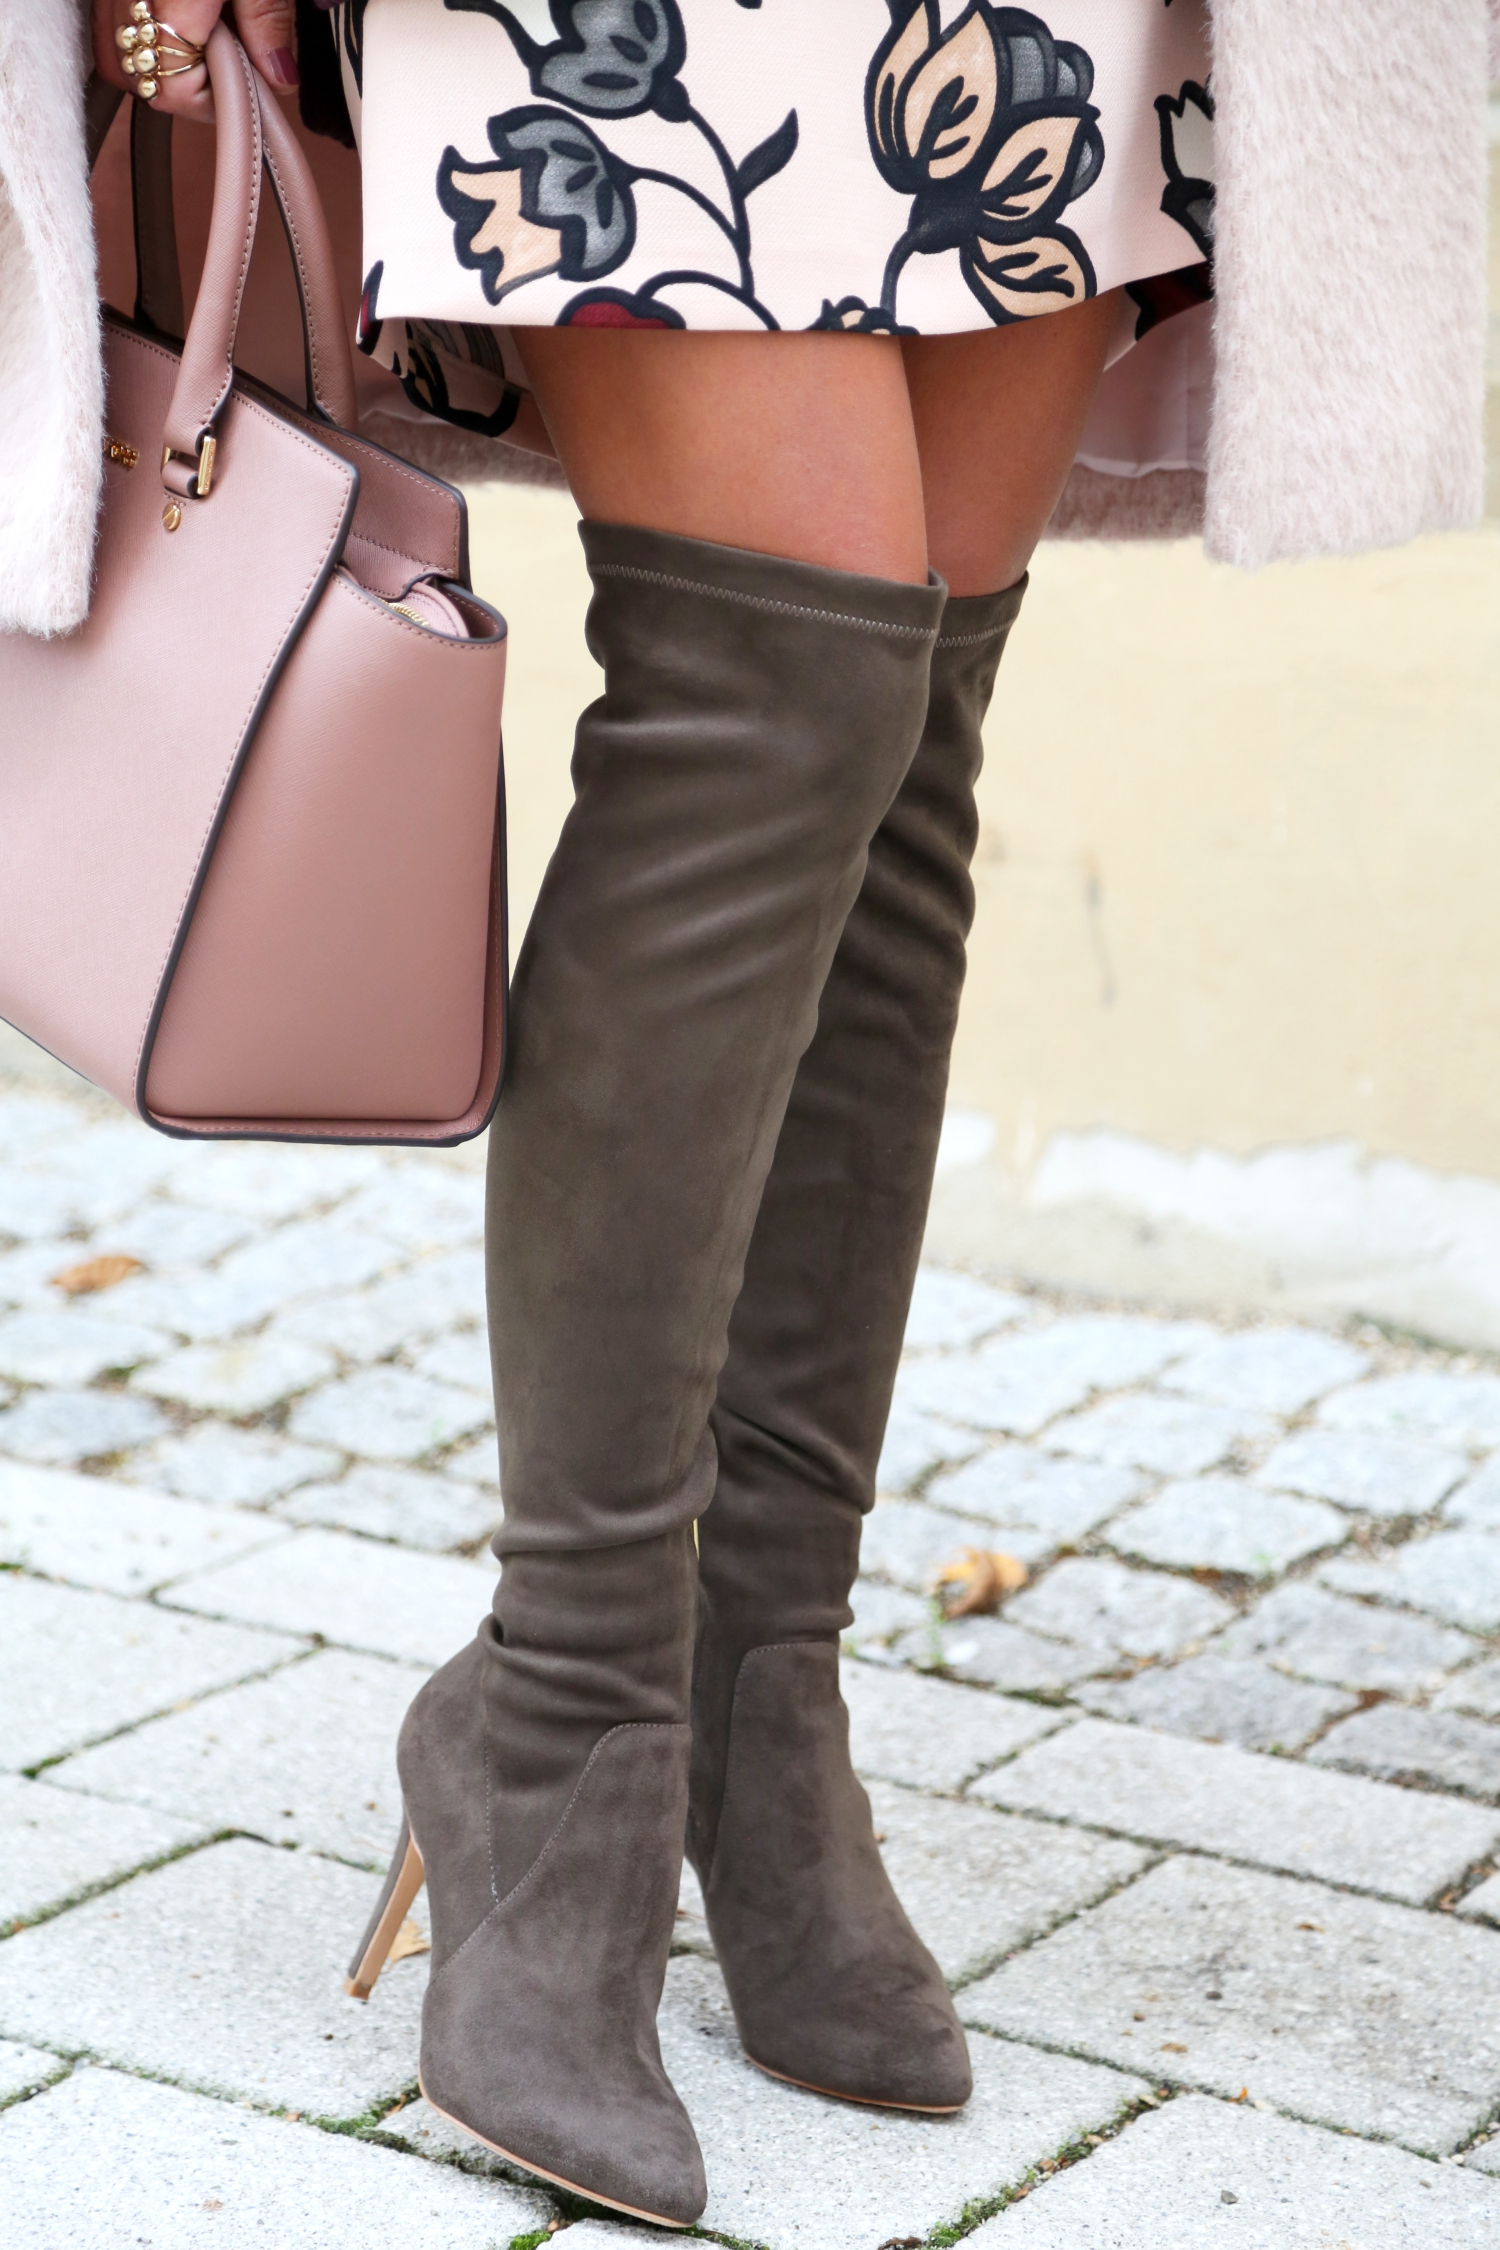 outfit-overknee-boots-joie-fashionhippieloves-hallhuber-look-autumn-fall